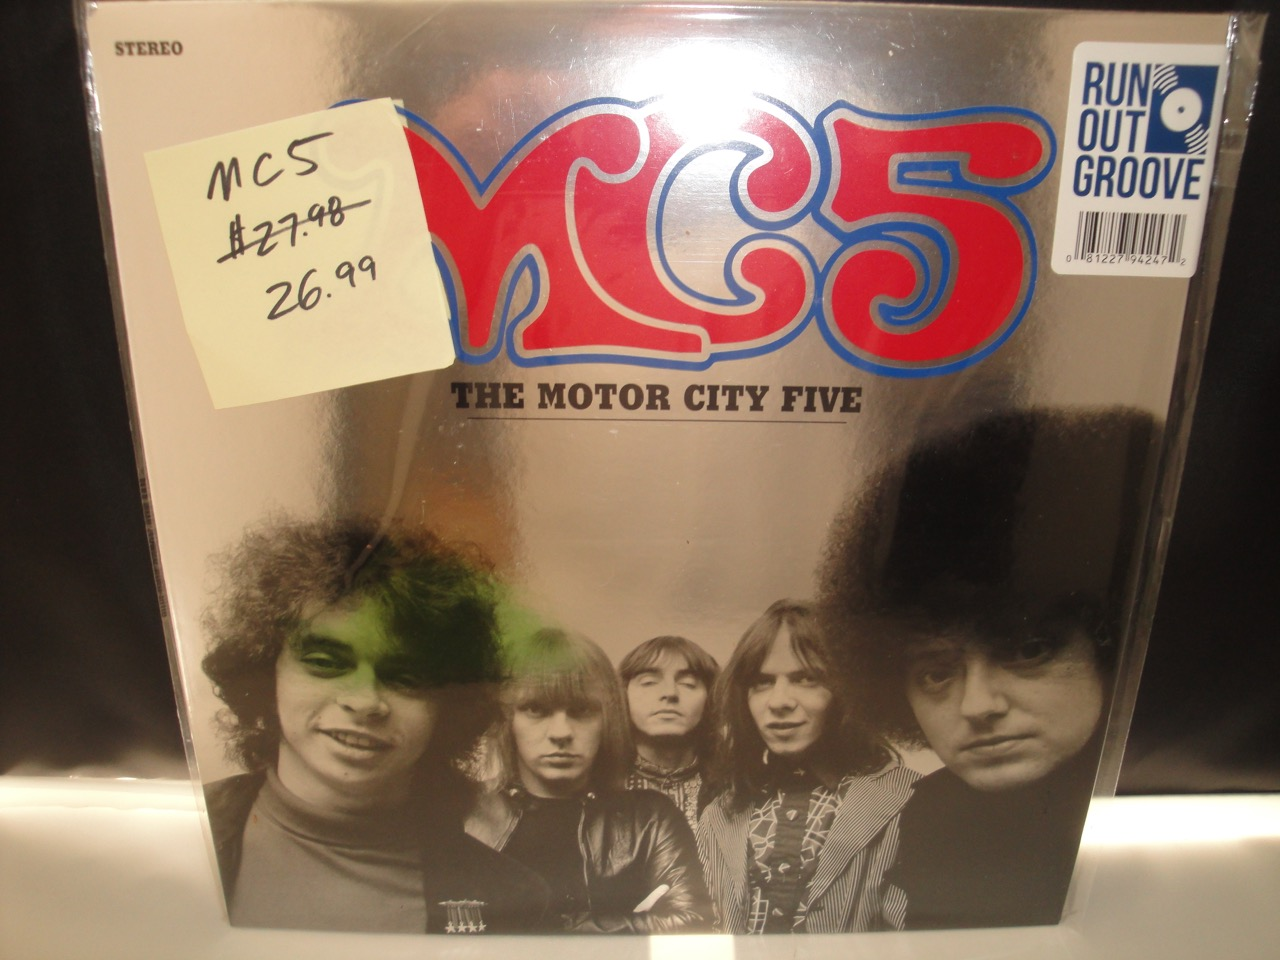 MC5 - The Motor City Five - 2017 Vinyl Reissue - Run Out Groove - with a slightly bumped corner!